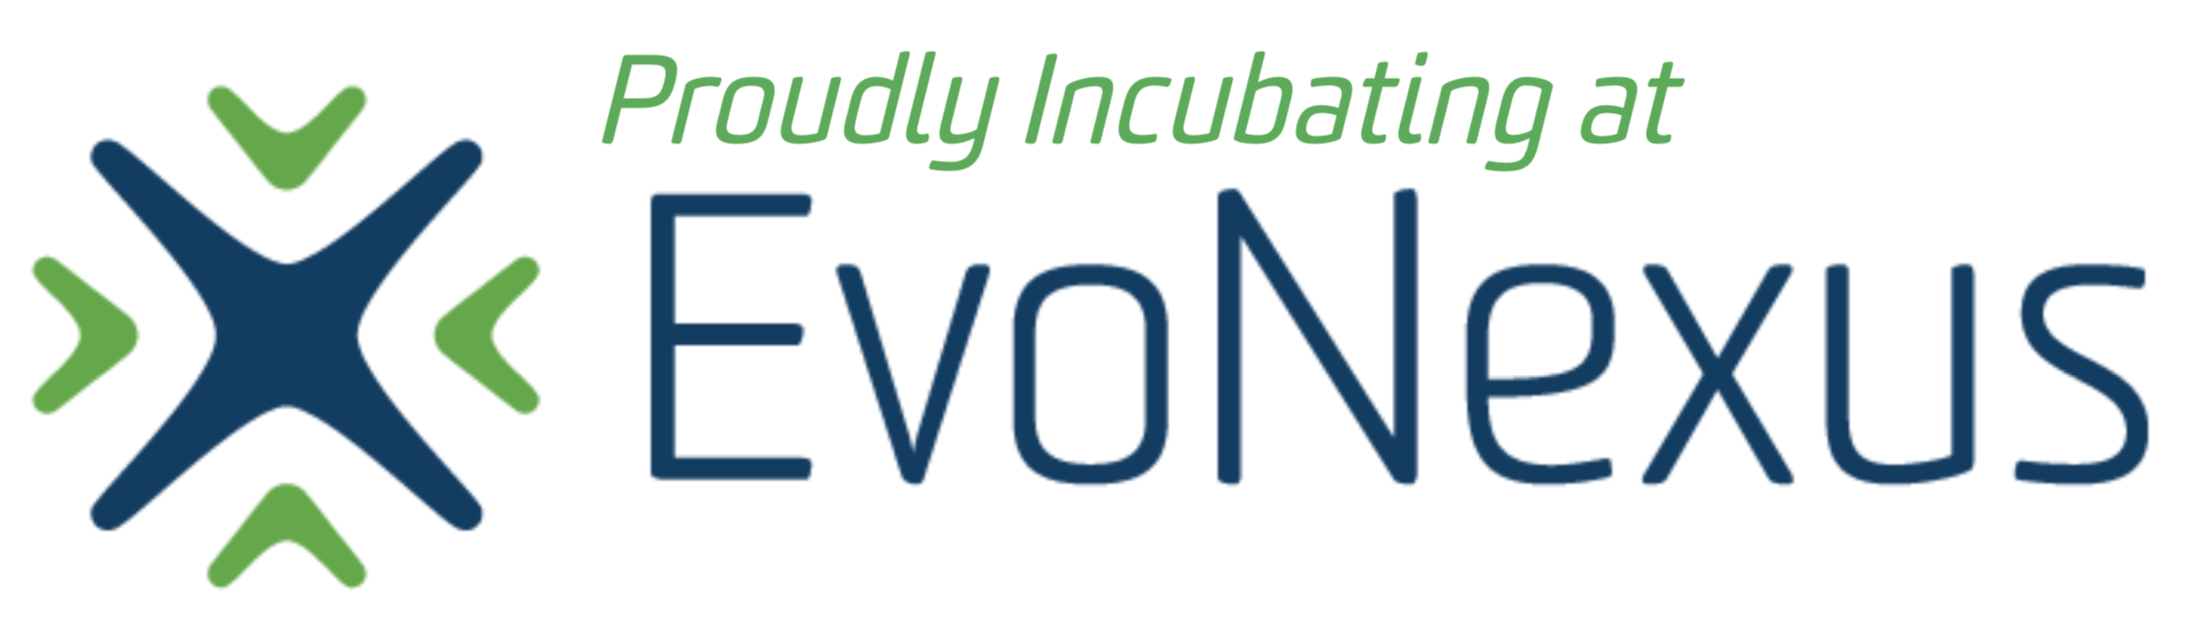 Proudly incubating at EvoNexus